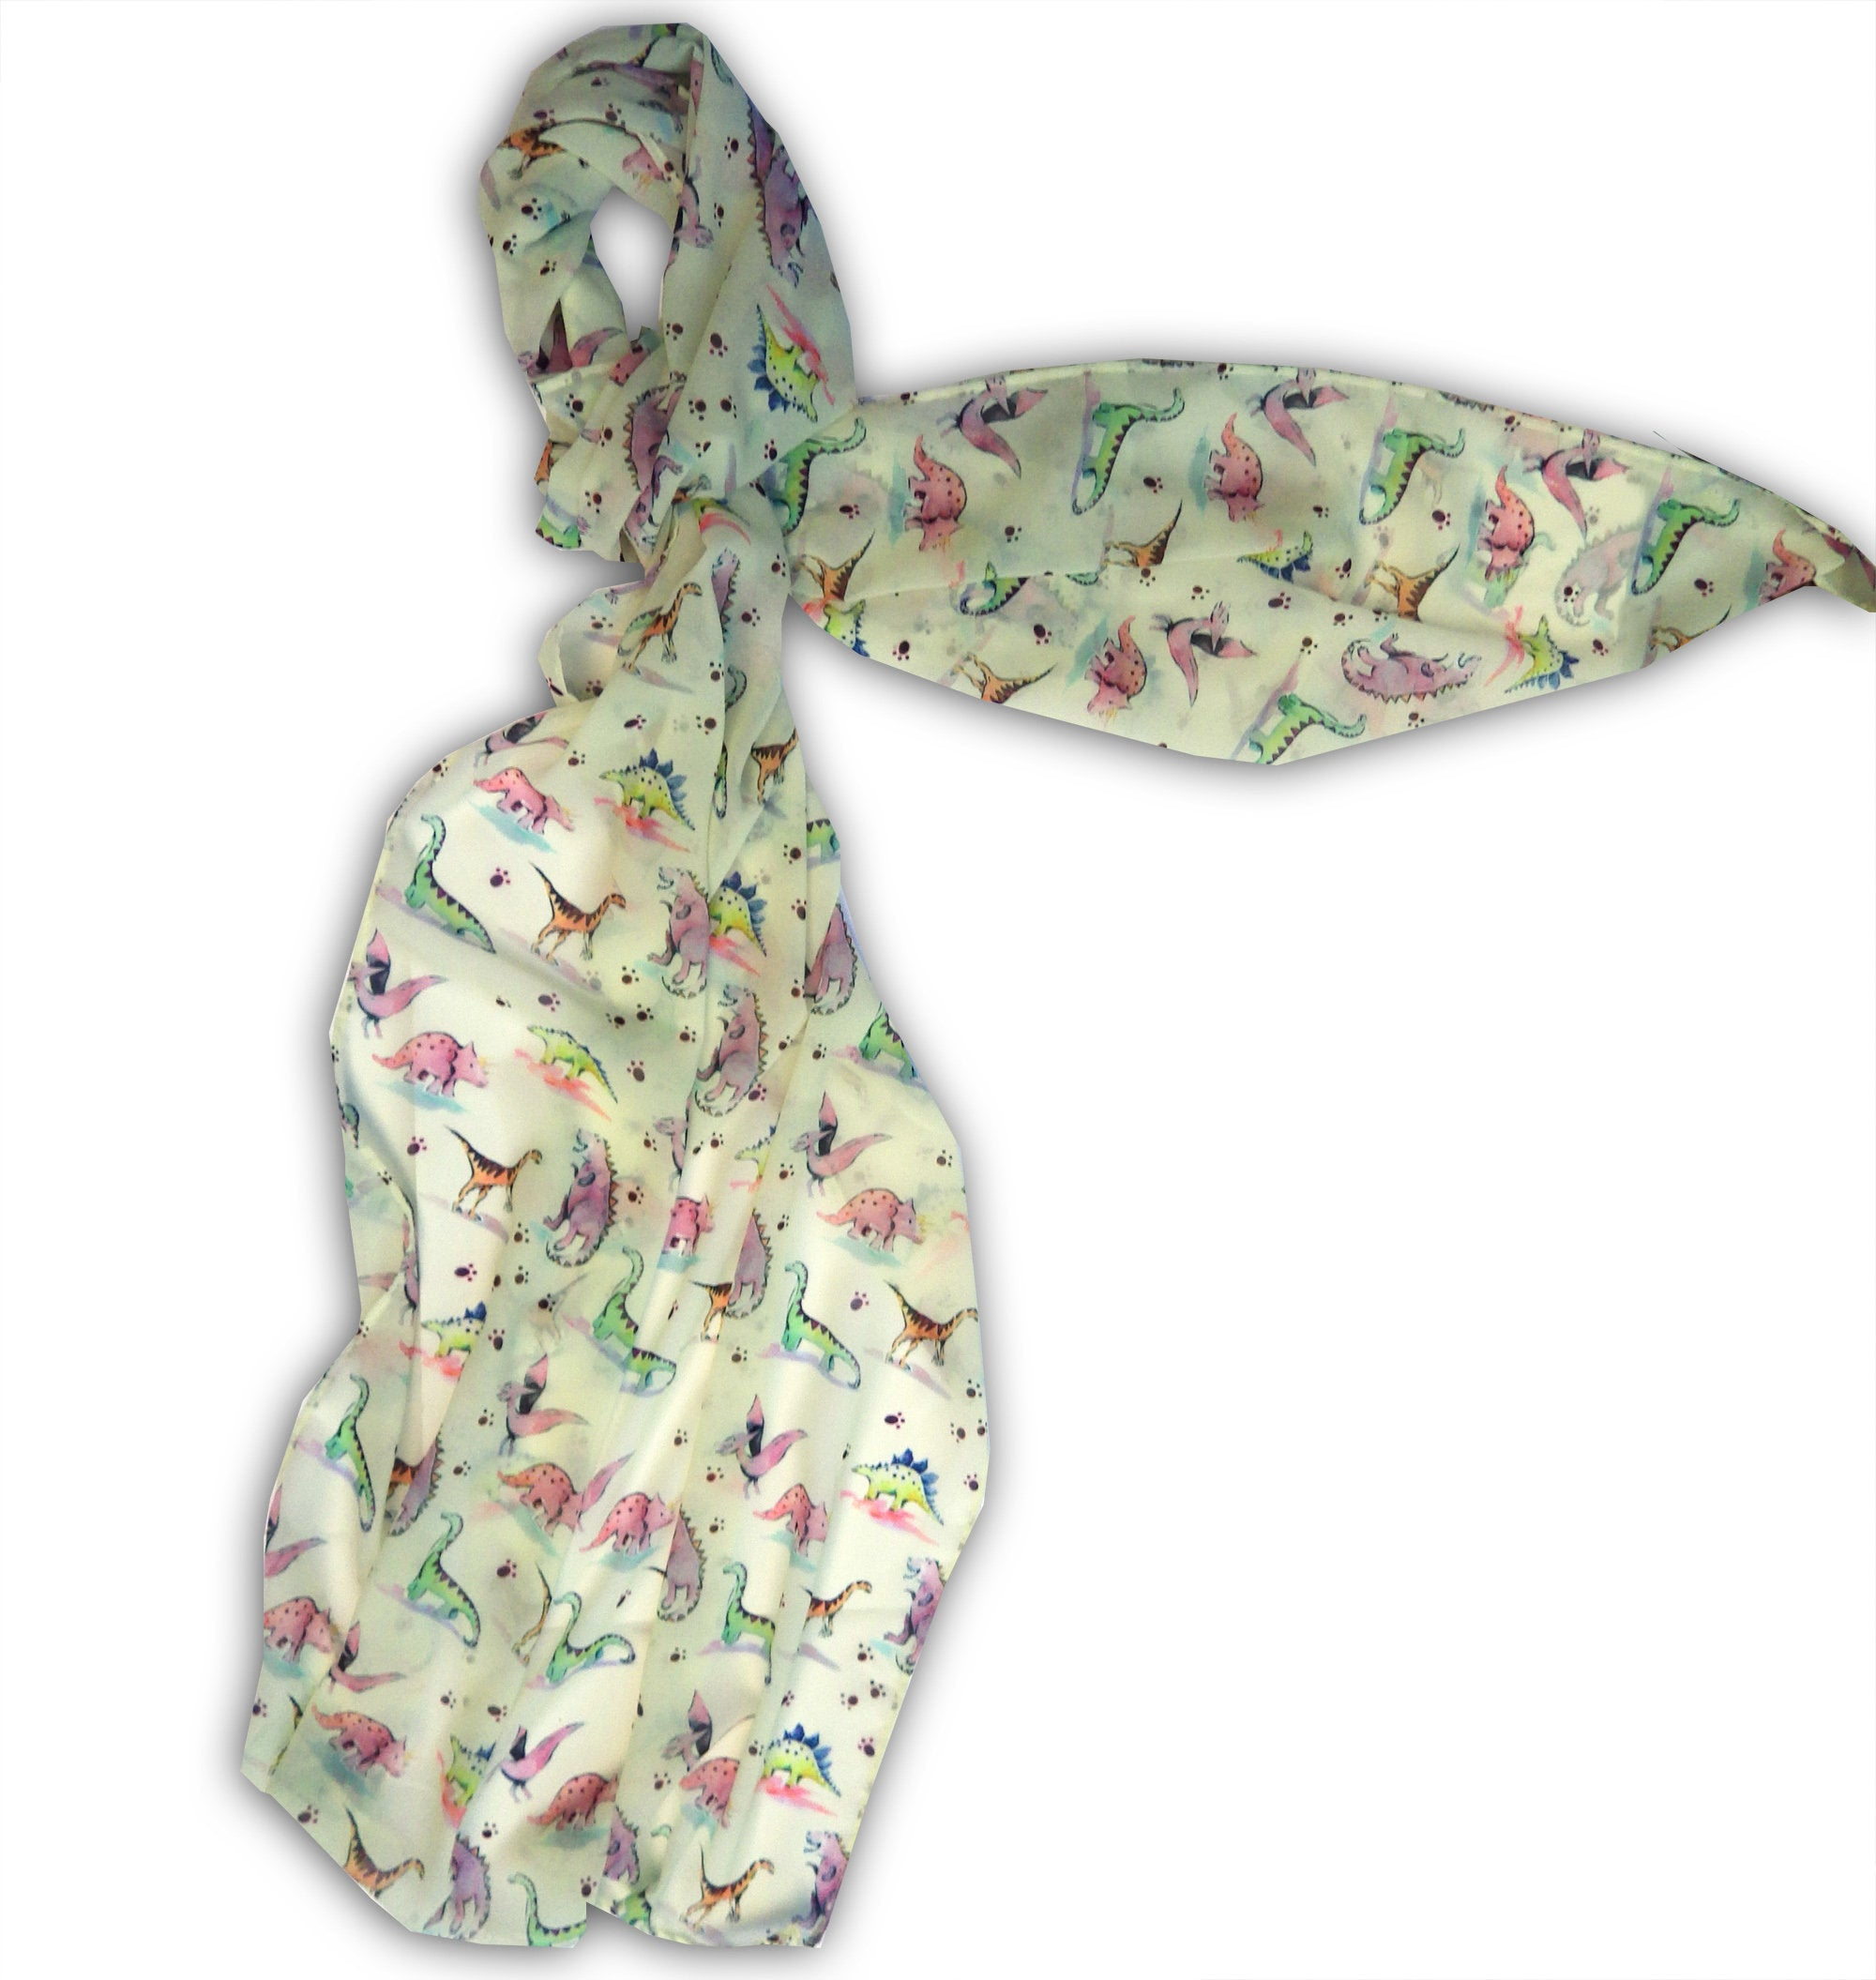 Large Dinosaur Chiffon Scarf, Woman's Scarf, Spring Summer Autumn Scarf, Gifts for her, Mother's Day Gift, Gift for Car Lover